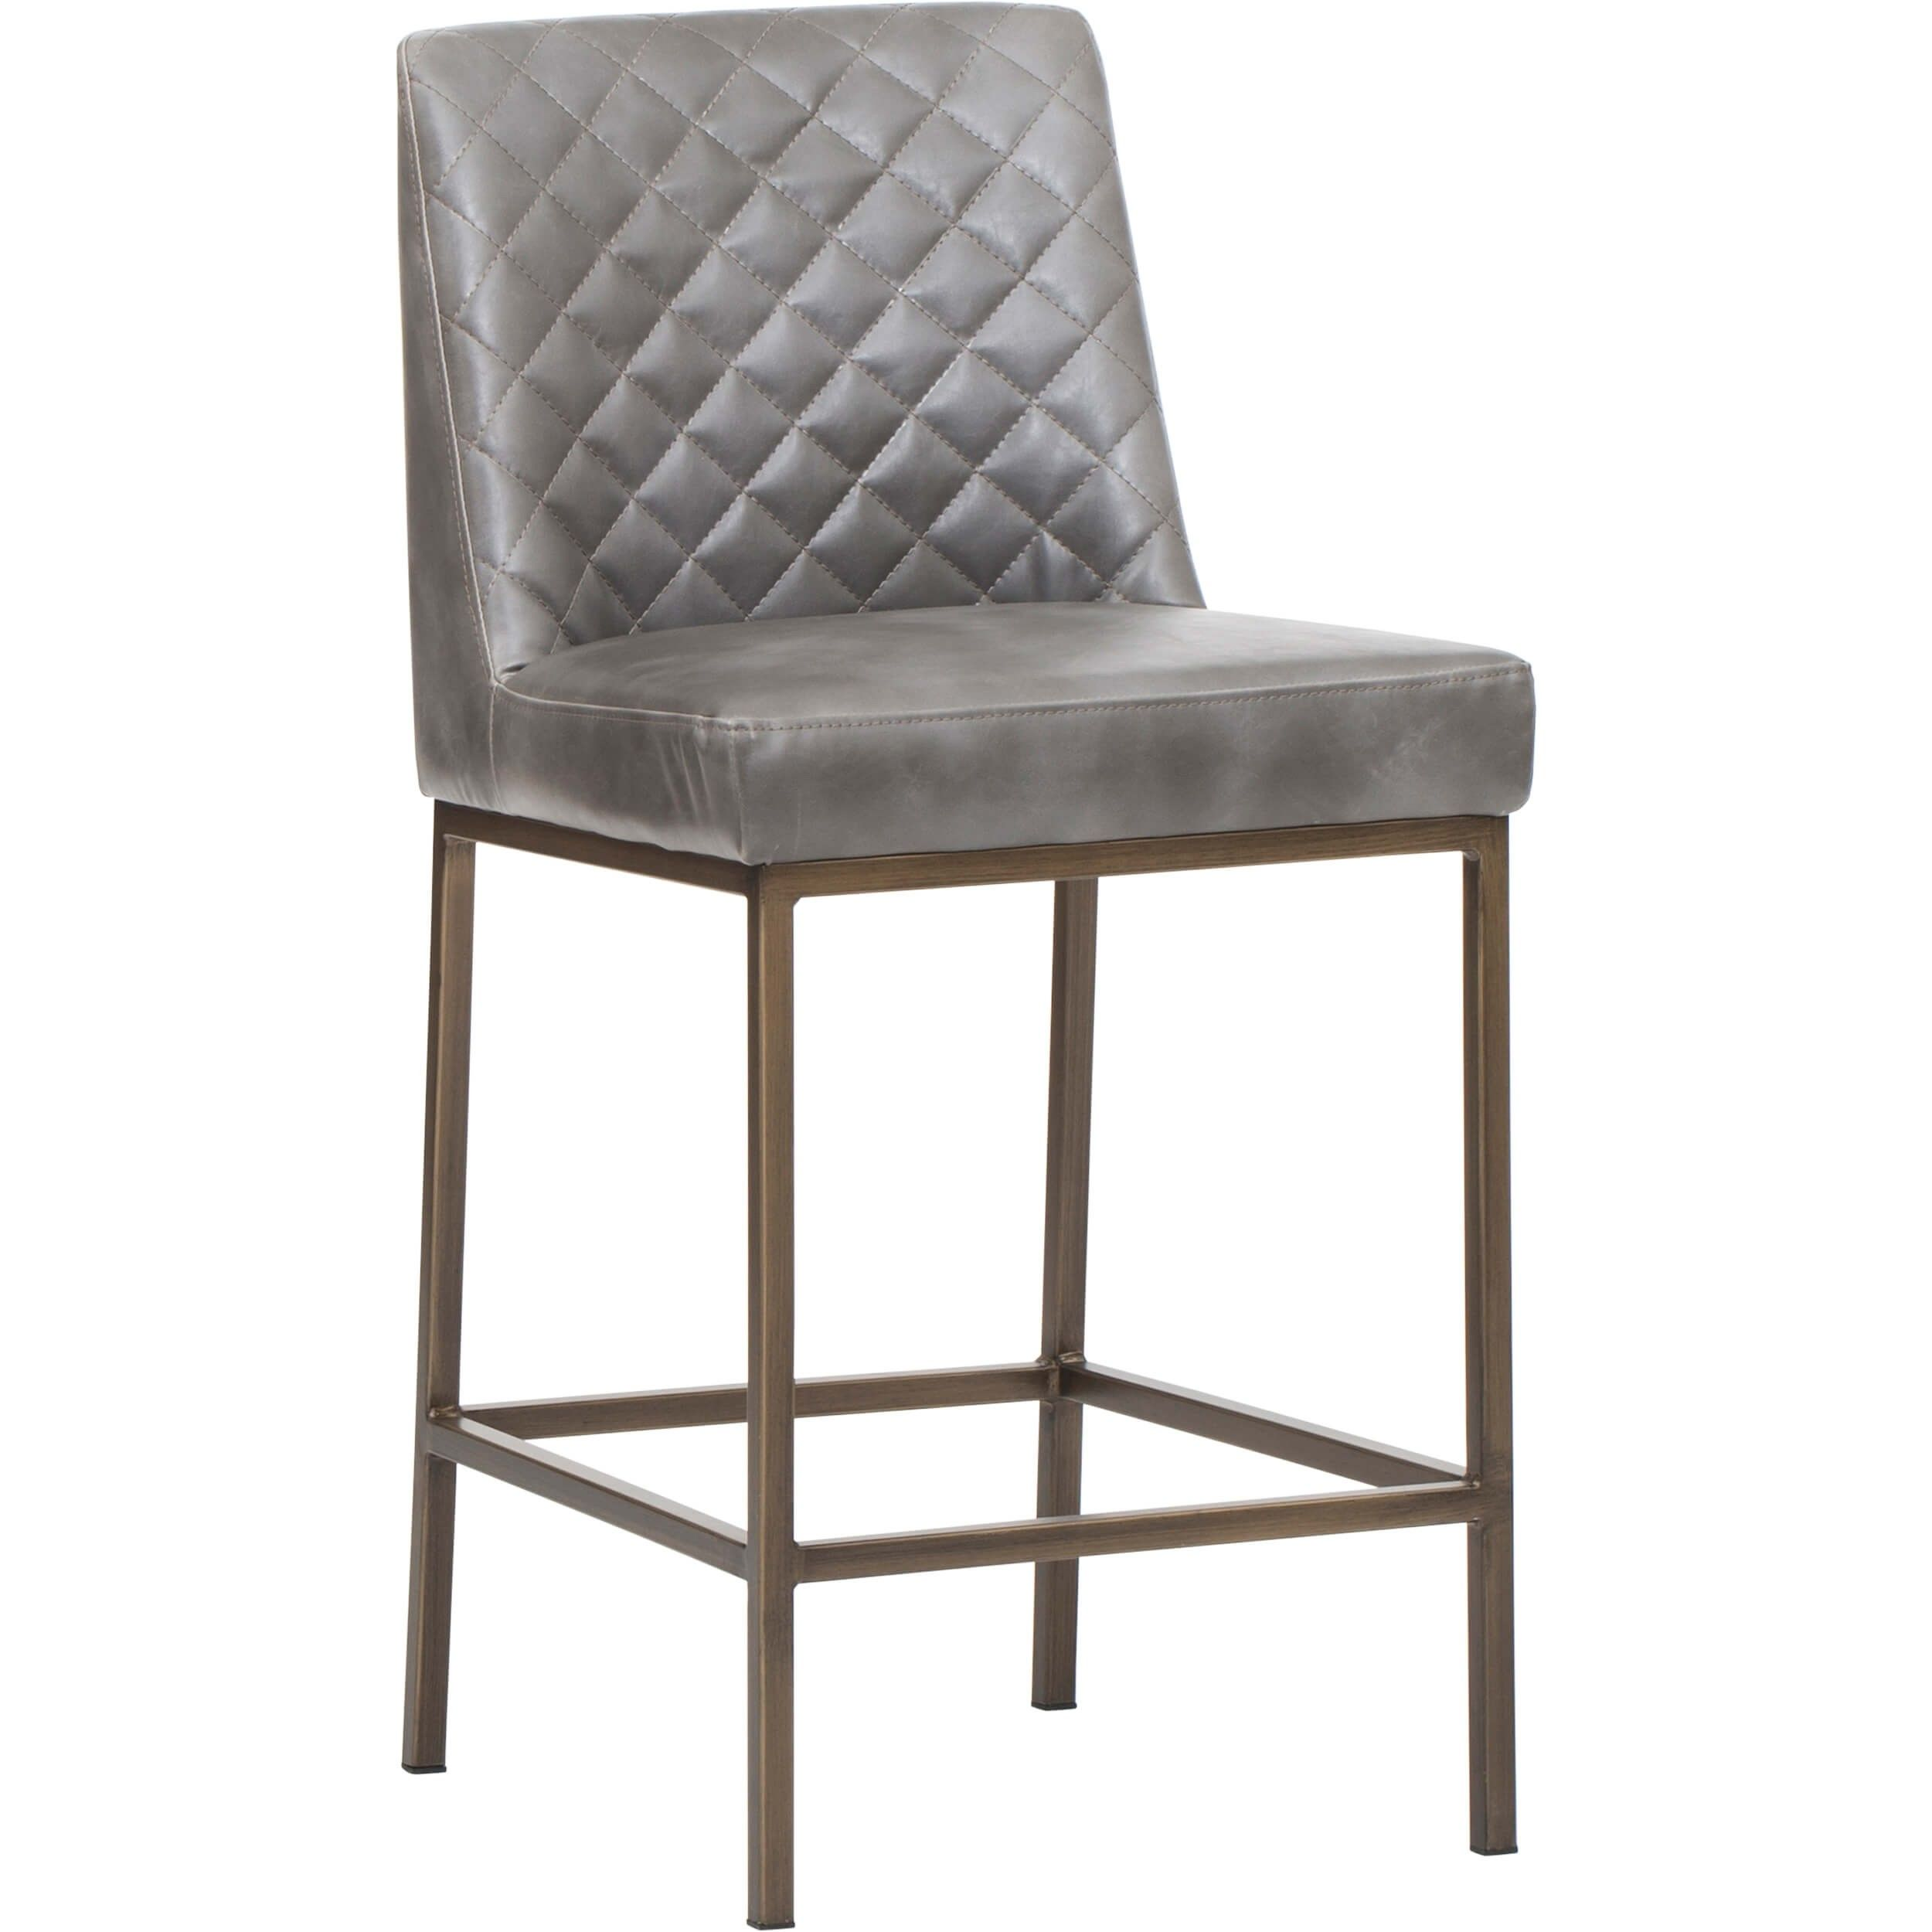 metal house nickel stool well leather counter height kitchen swivel home polished luxuries amisco with grey arteriors stools for gray top appointed the splendiferous small bar legs